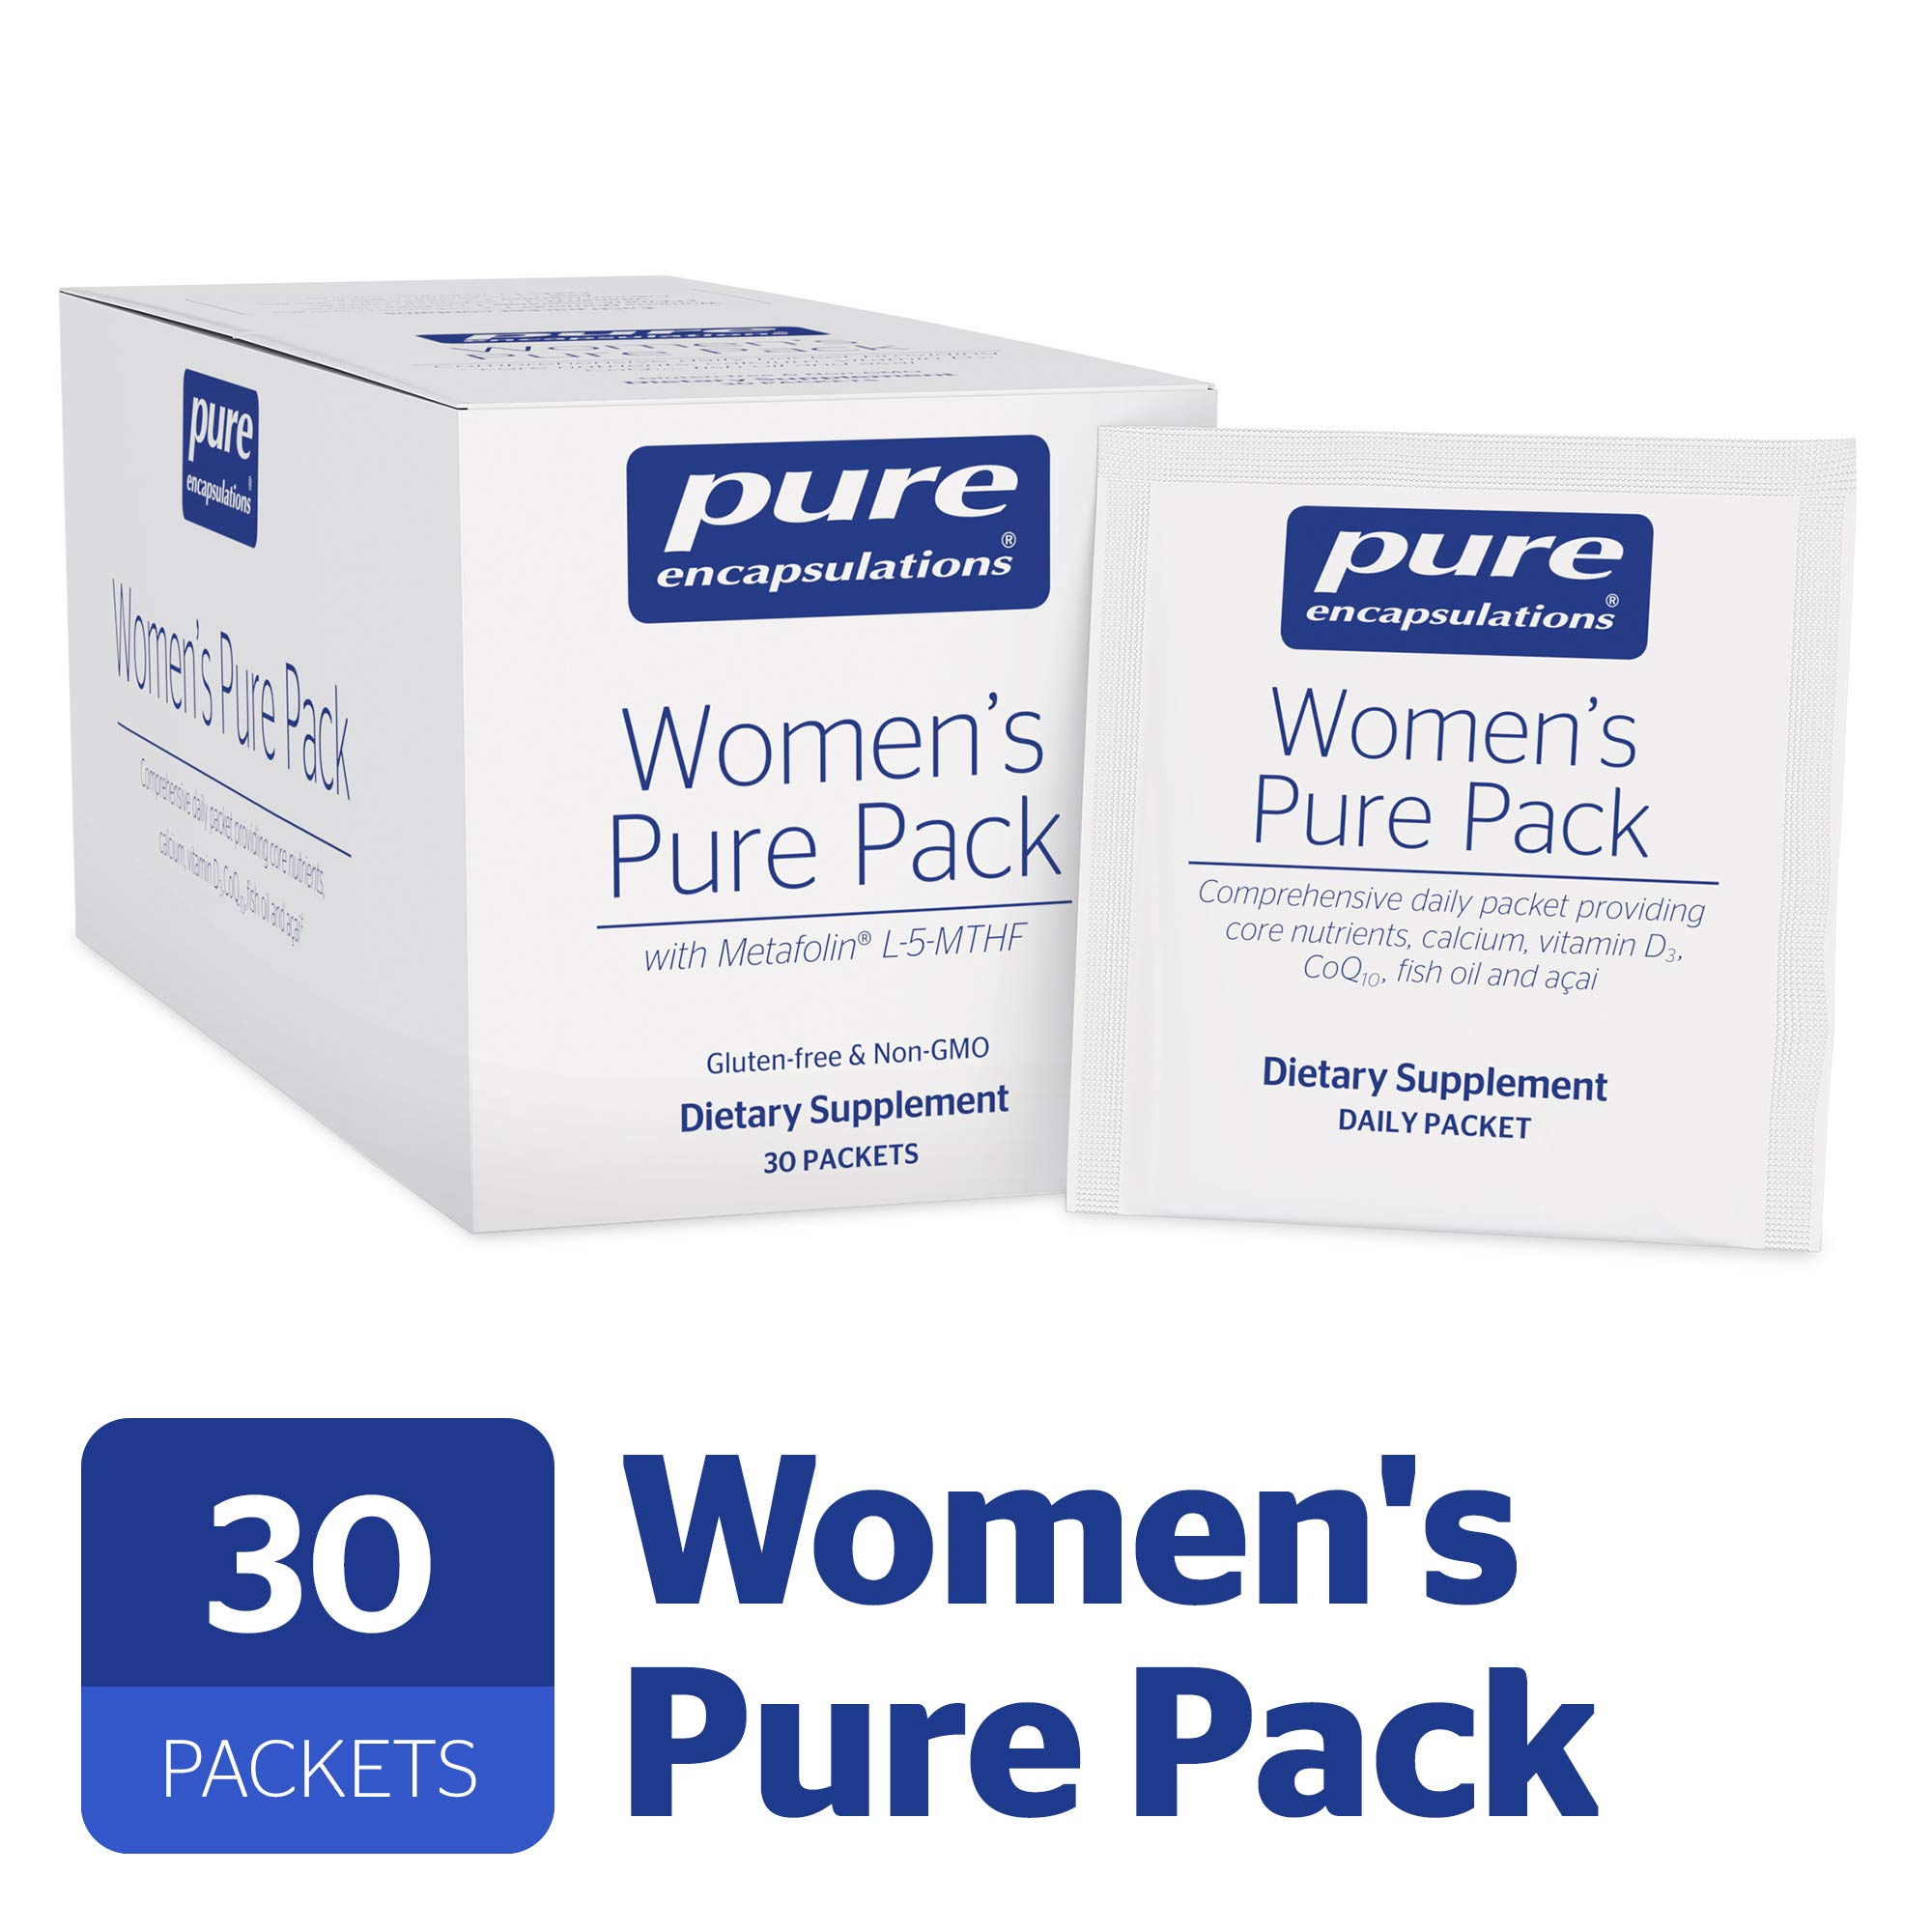 Pure Encapsulations - Women's Pure Pack - Hypoallergenic Multi-Vitamin/Mineral Complex with Omega-3 Fatty Acids, CoQ10, and Antioxidant Support* - 30 Packets